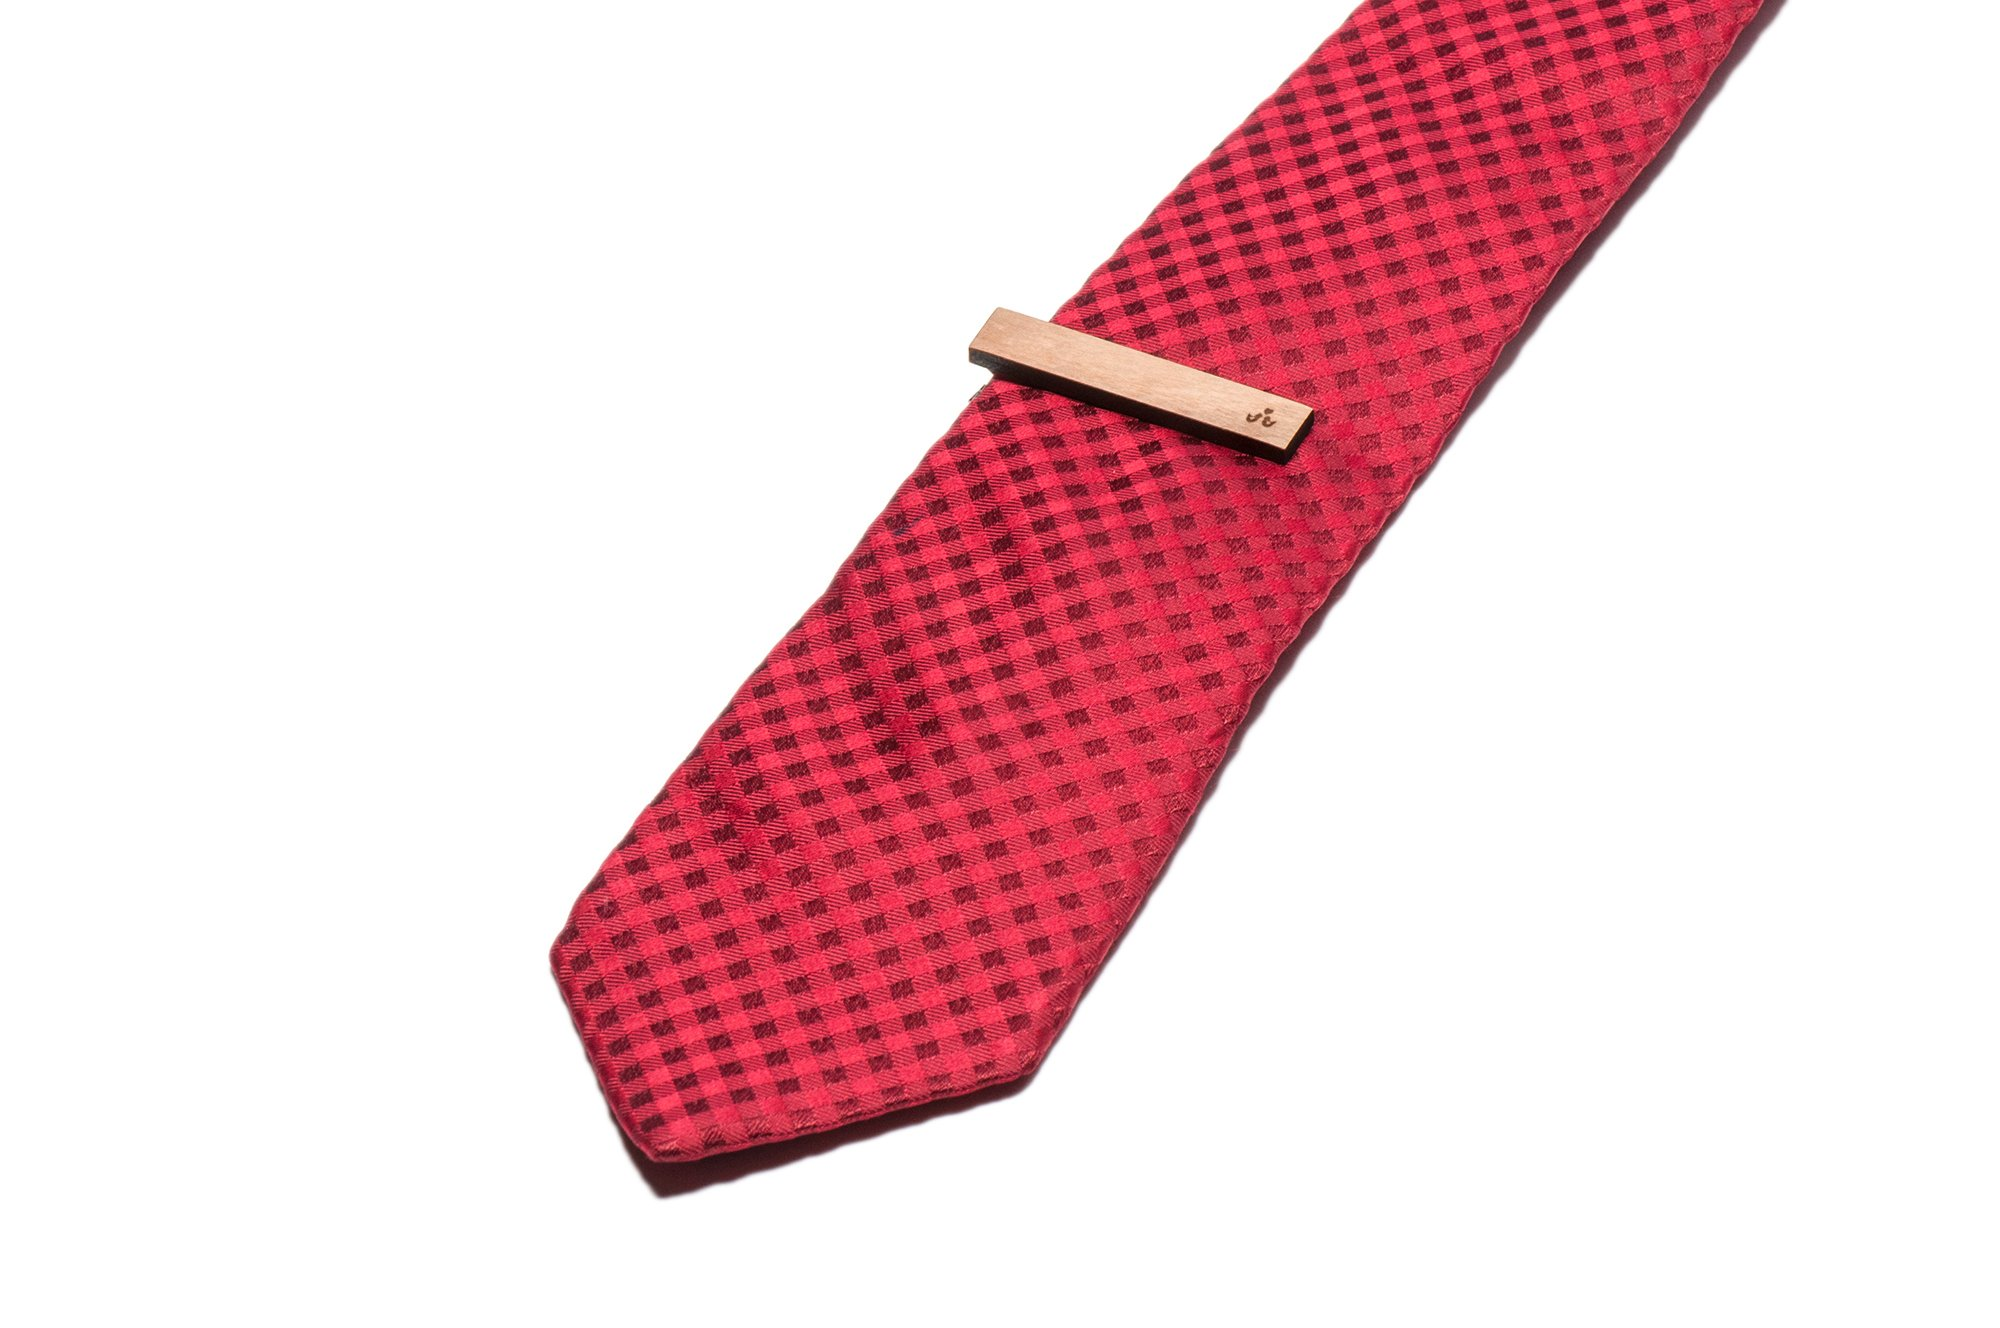 WOODEN ACCESSORIES COMPANY Wooden Tie Clips With Laser Engraved Lovebirds Design - Cherry Wood Tie Bar Engraved In The USA by Wooden Accessories Company (Image #3)